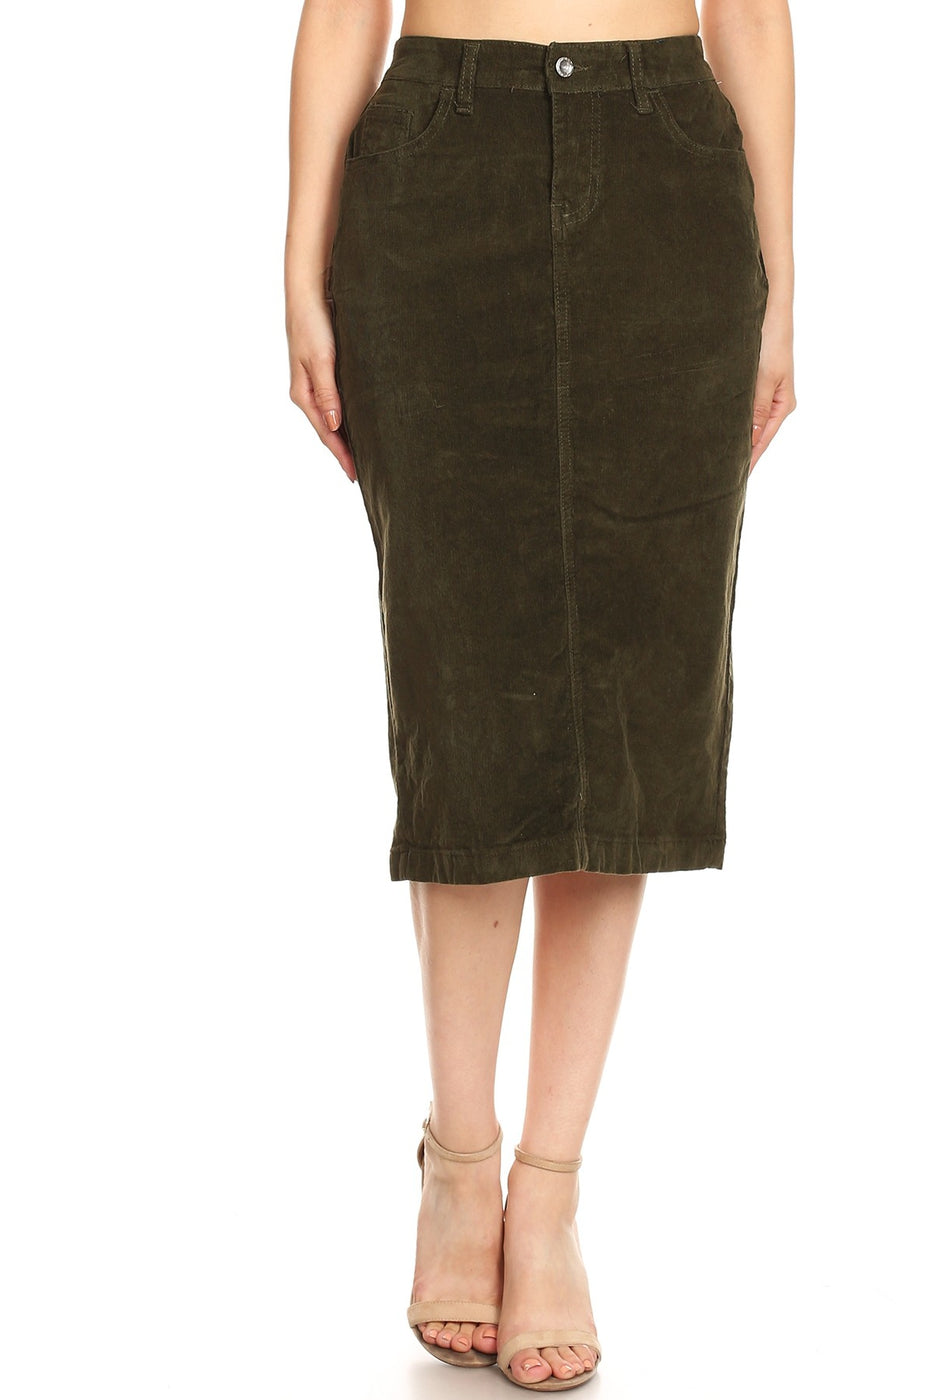 Gracey corduroy skirt in olive